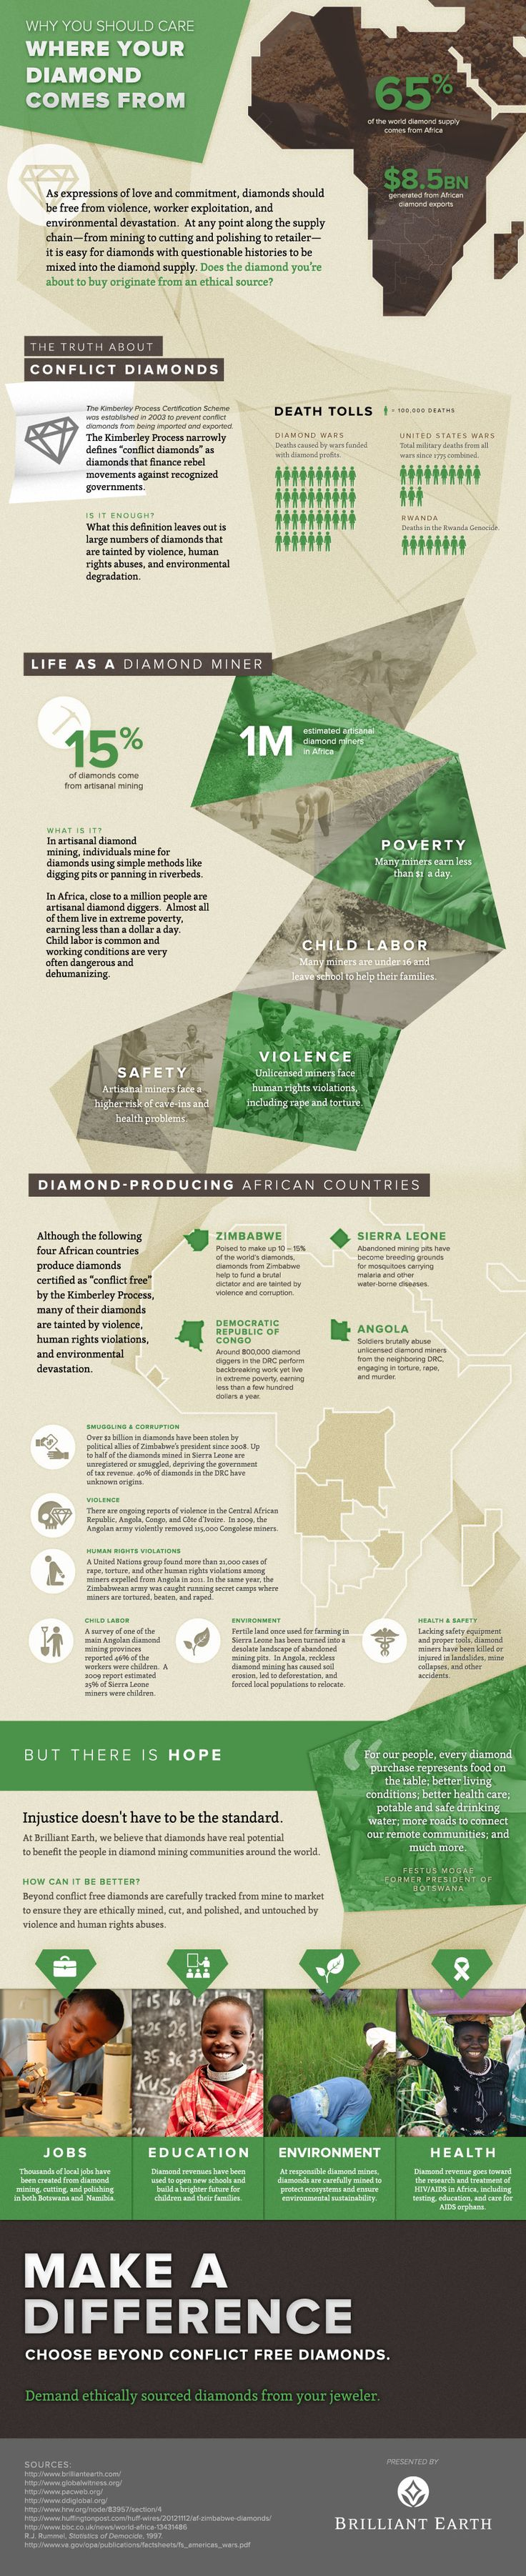 Why Should You Care Where Your Diamond Comes From? | Inhabitat - Green Design, Innovation, Architecture, Green Building